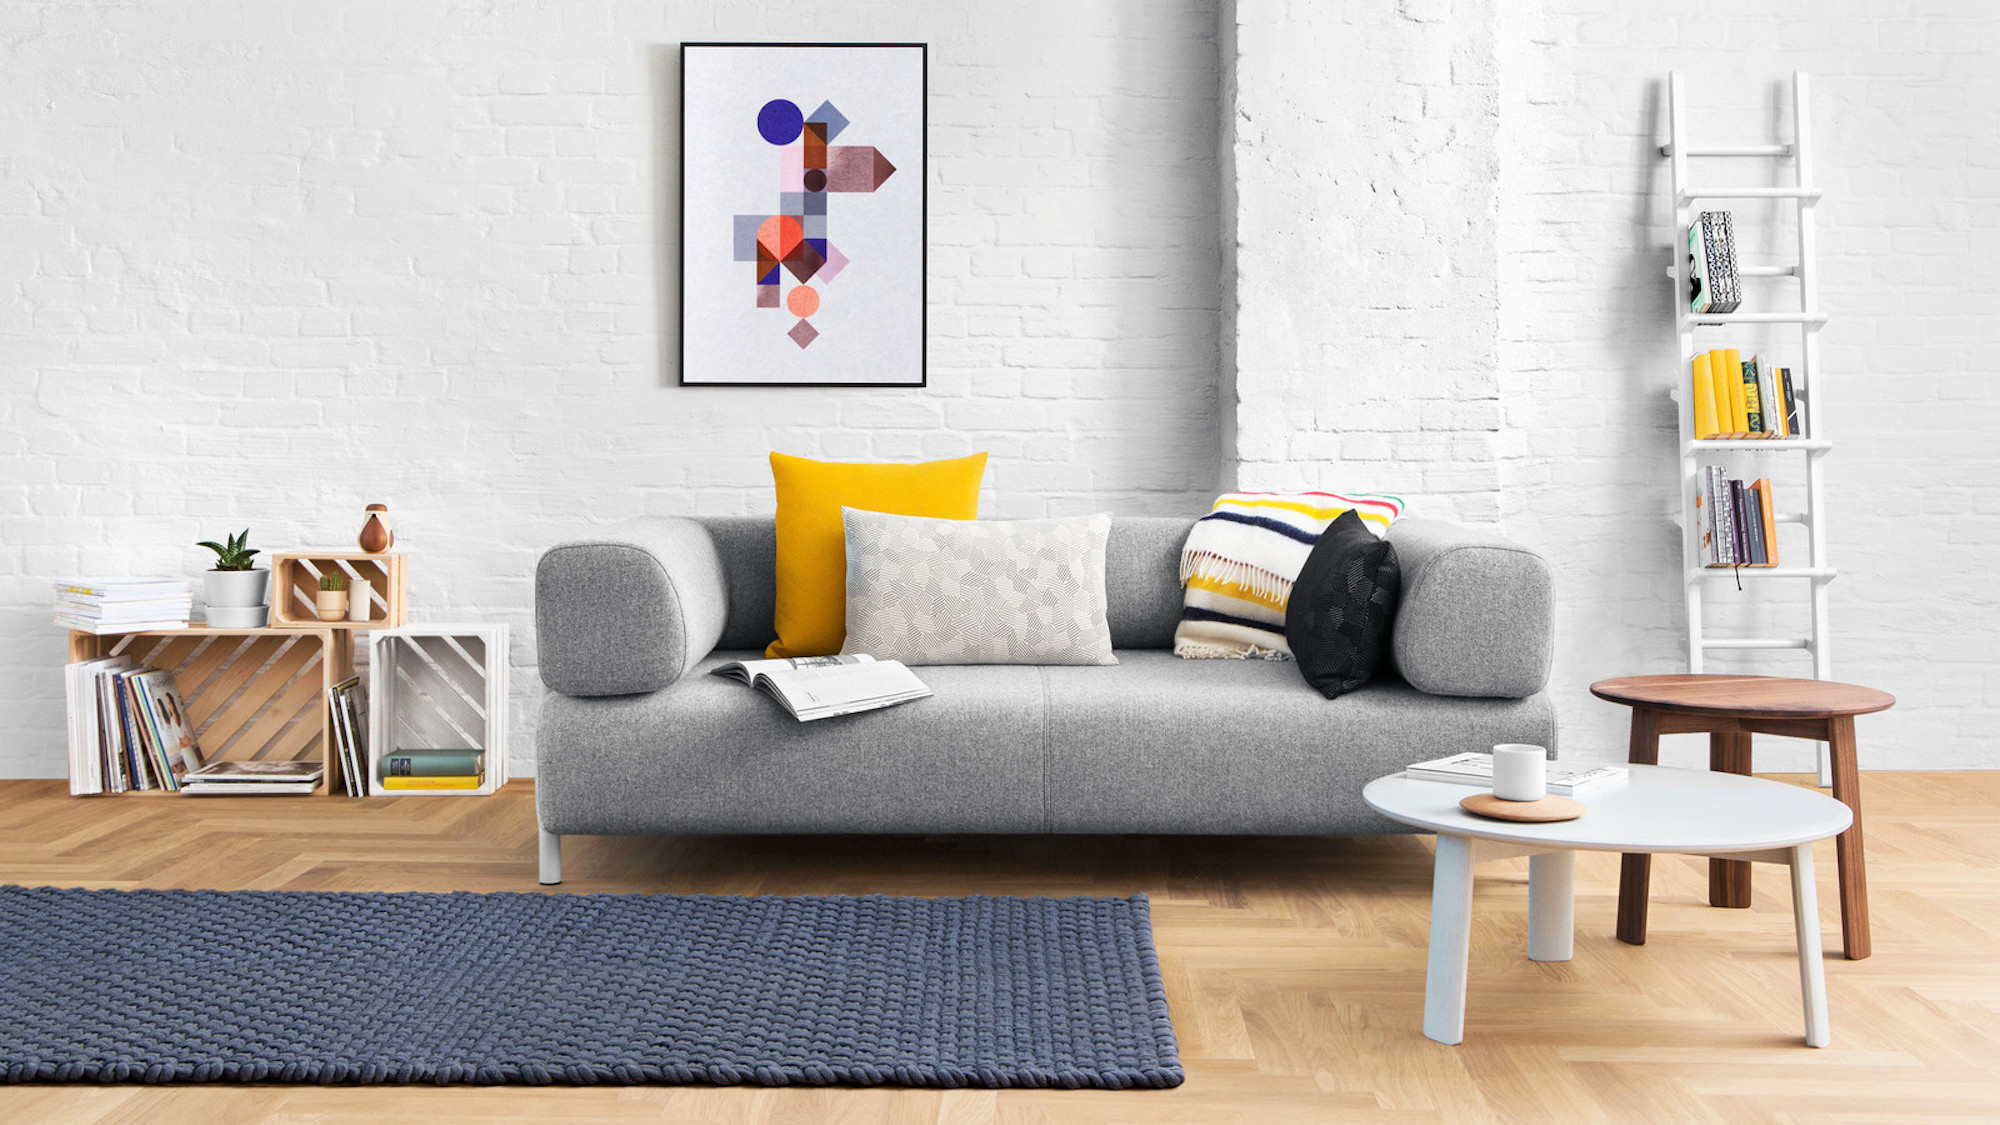 Where to shop for home goods and furniture online